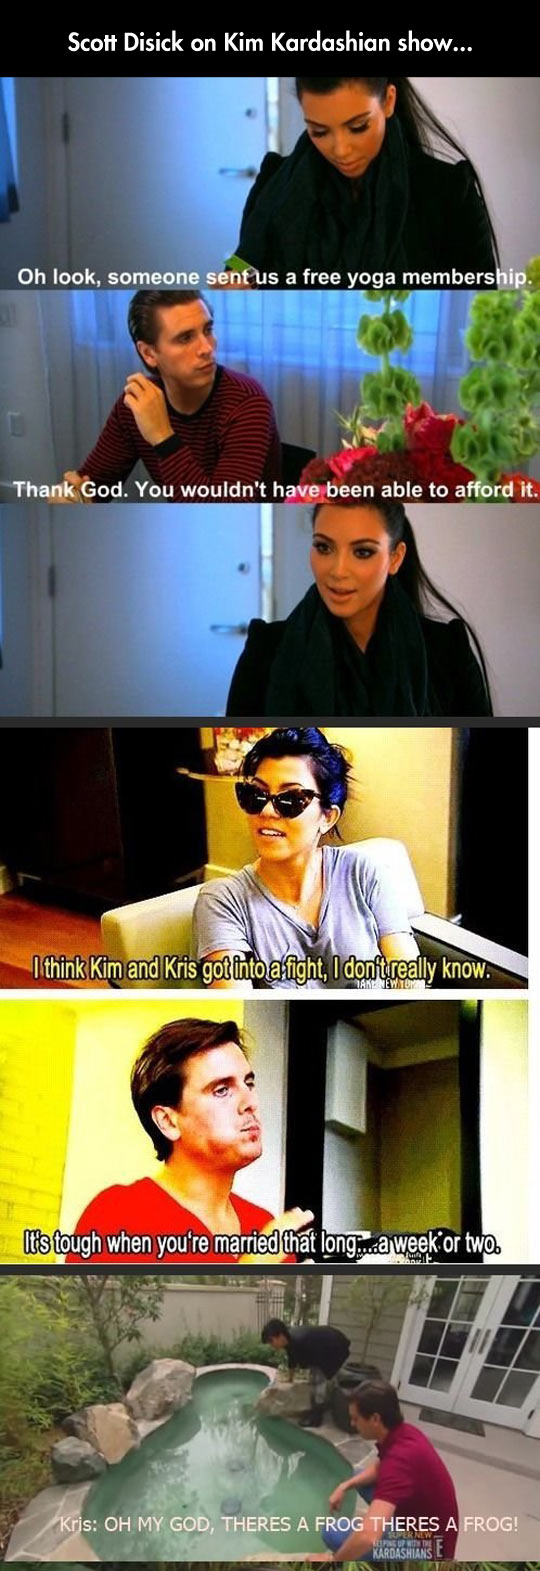 Keeping Up With Scott Disick